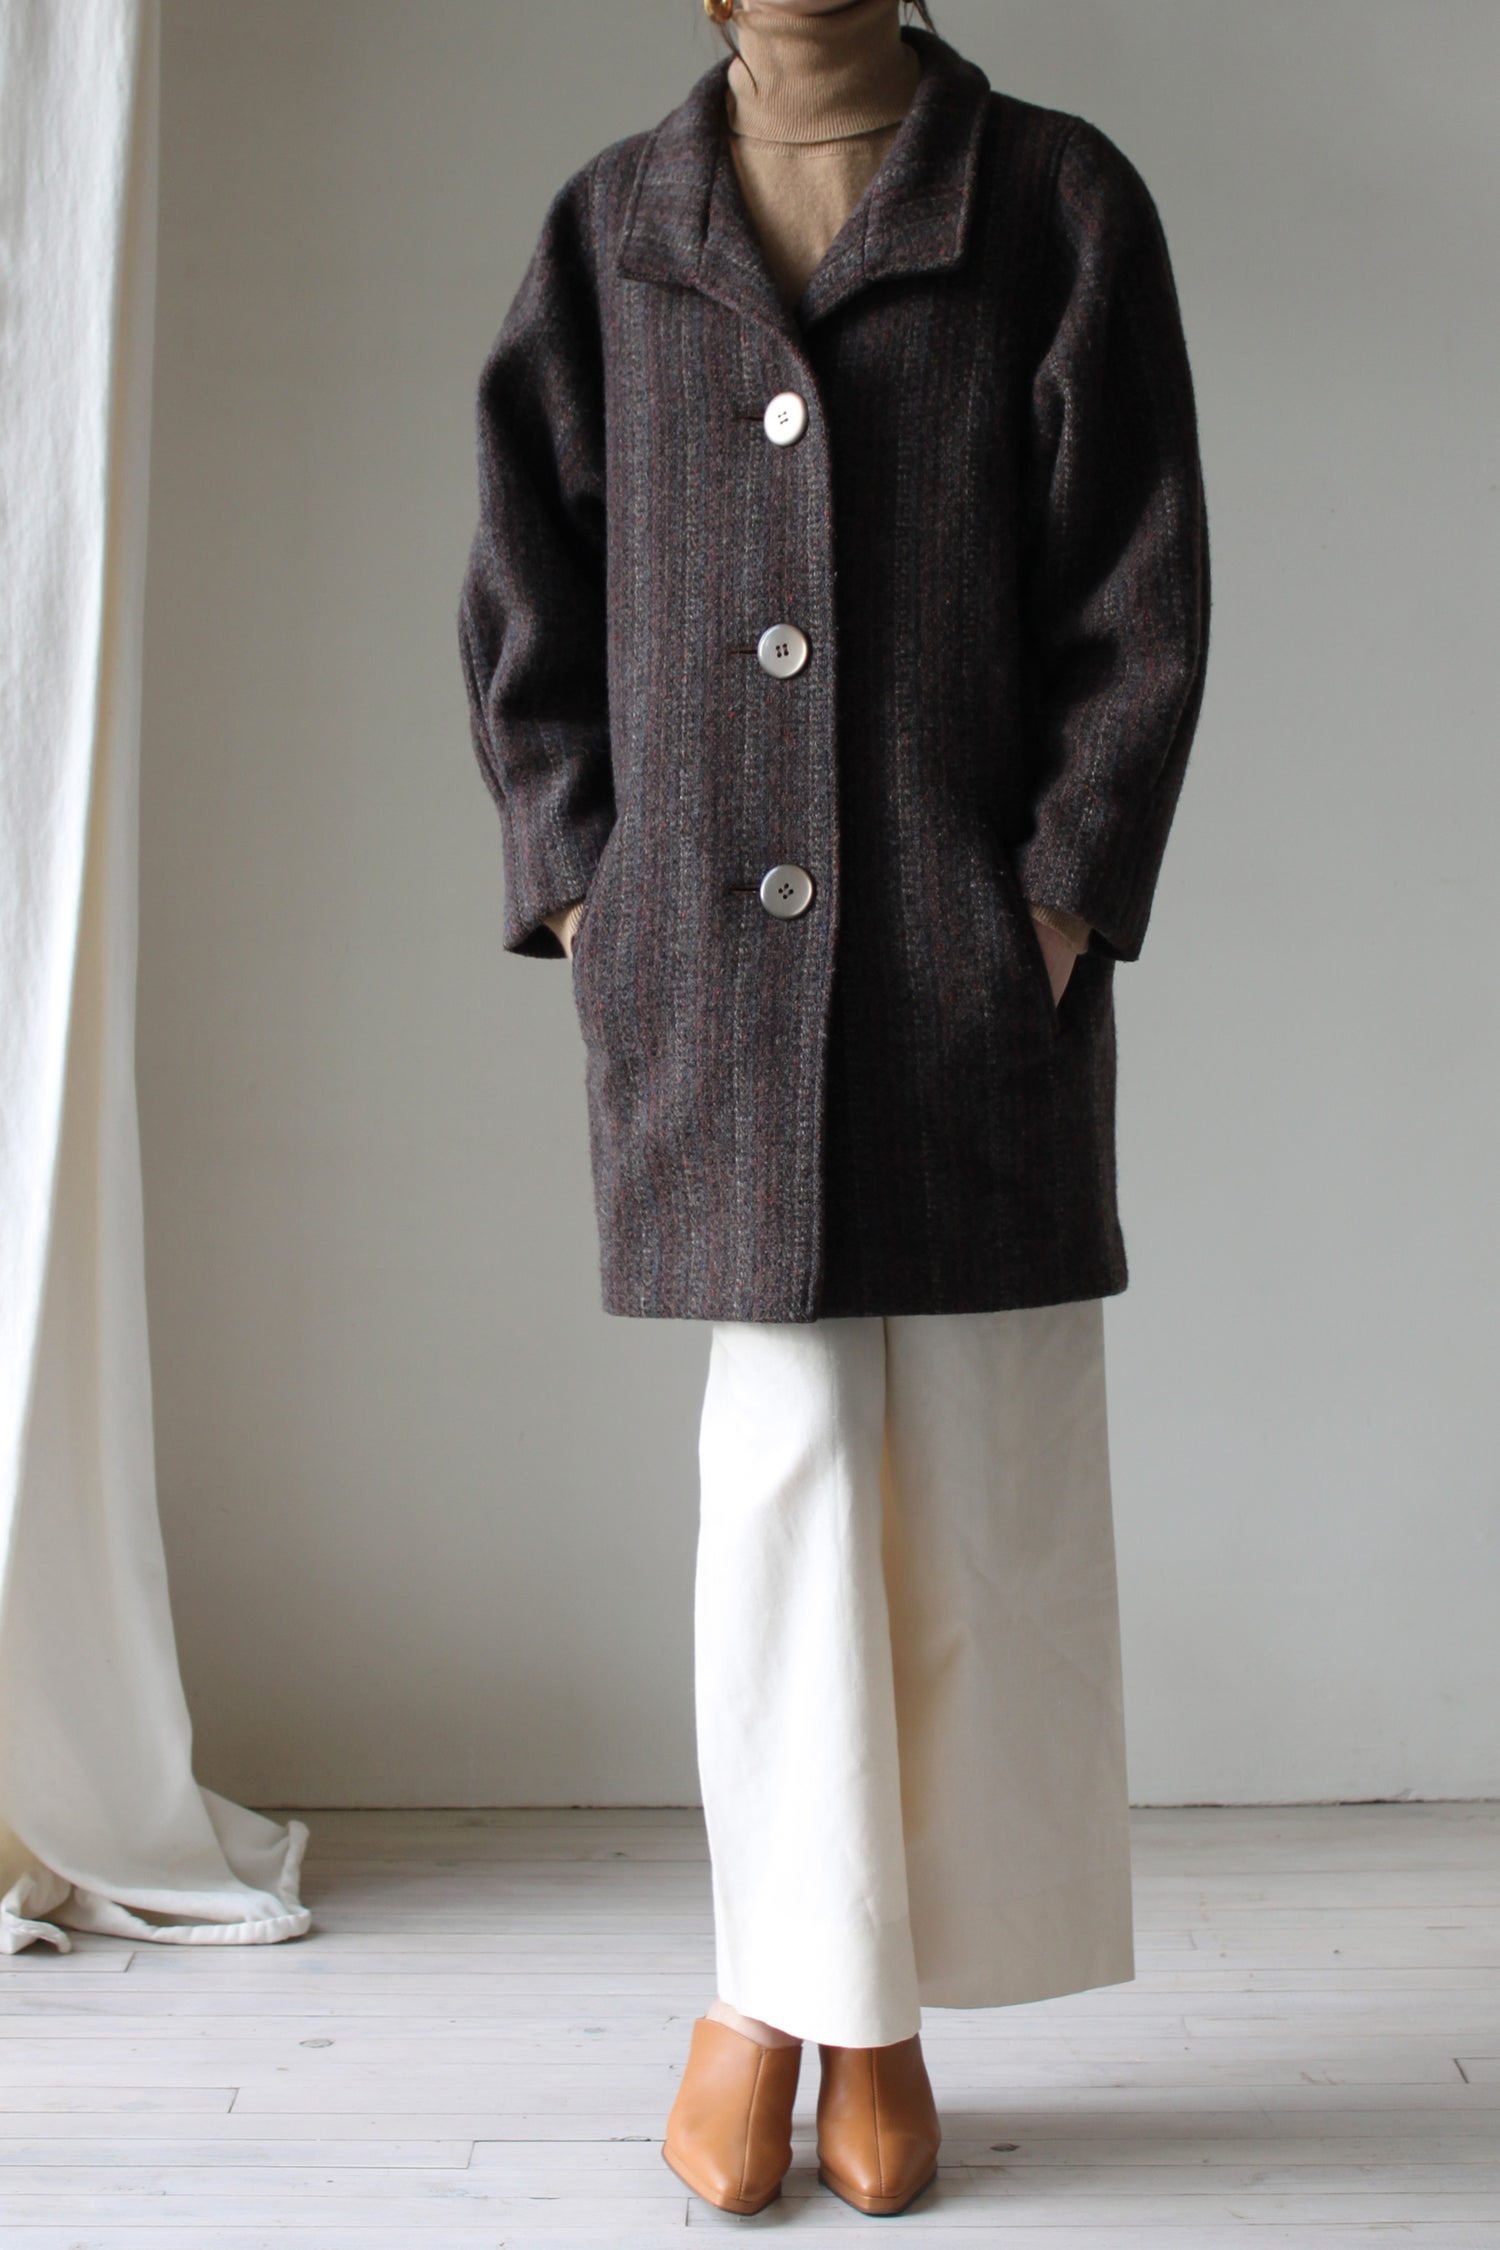 Image of 3 buttons coat